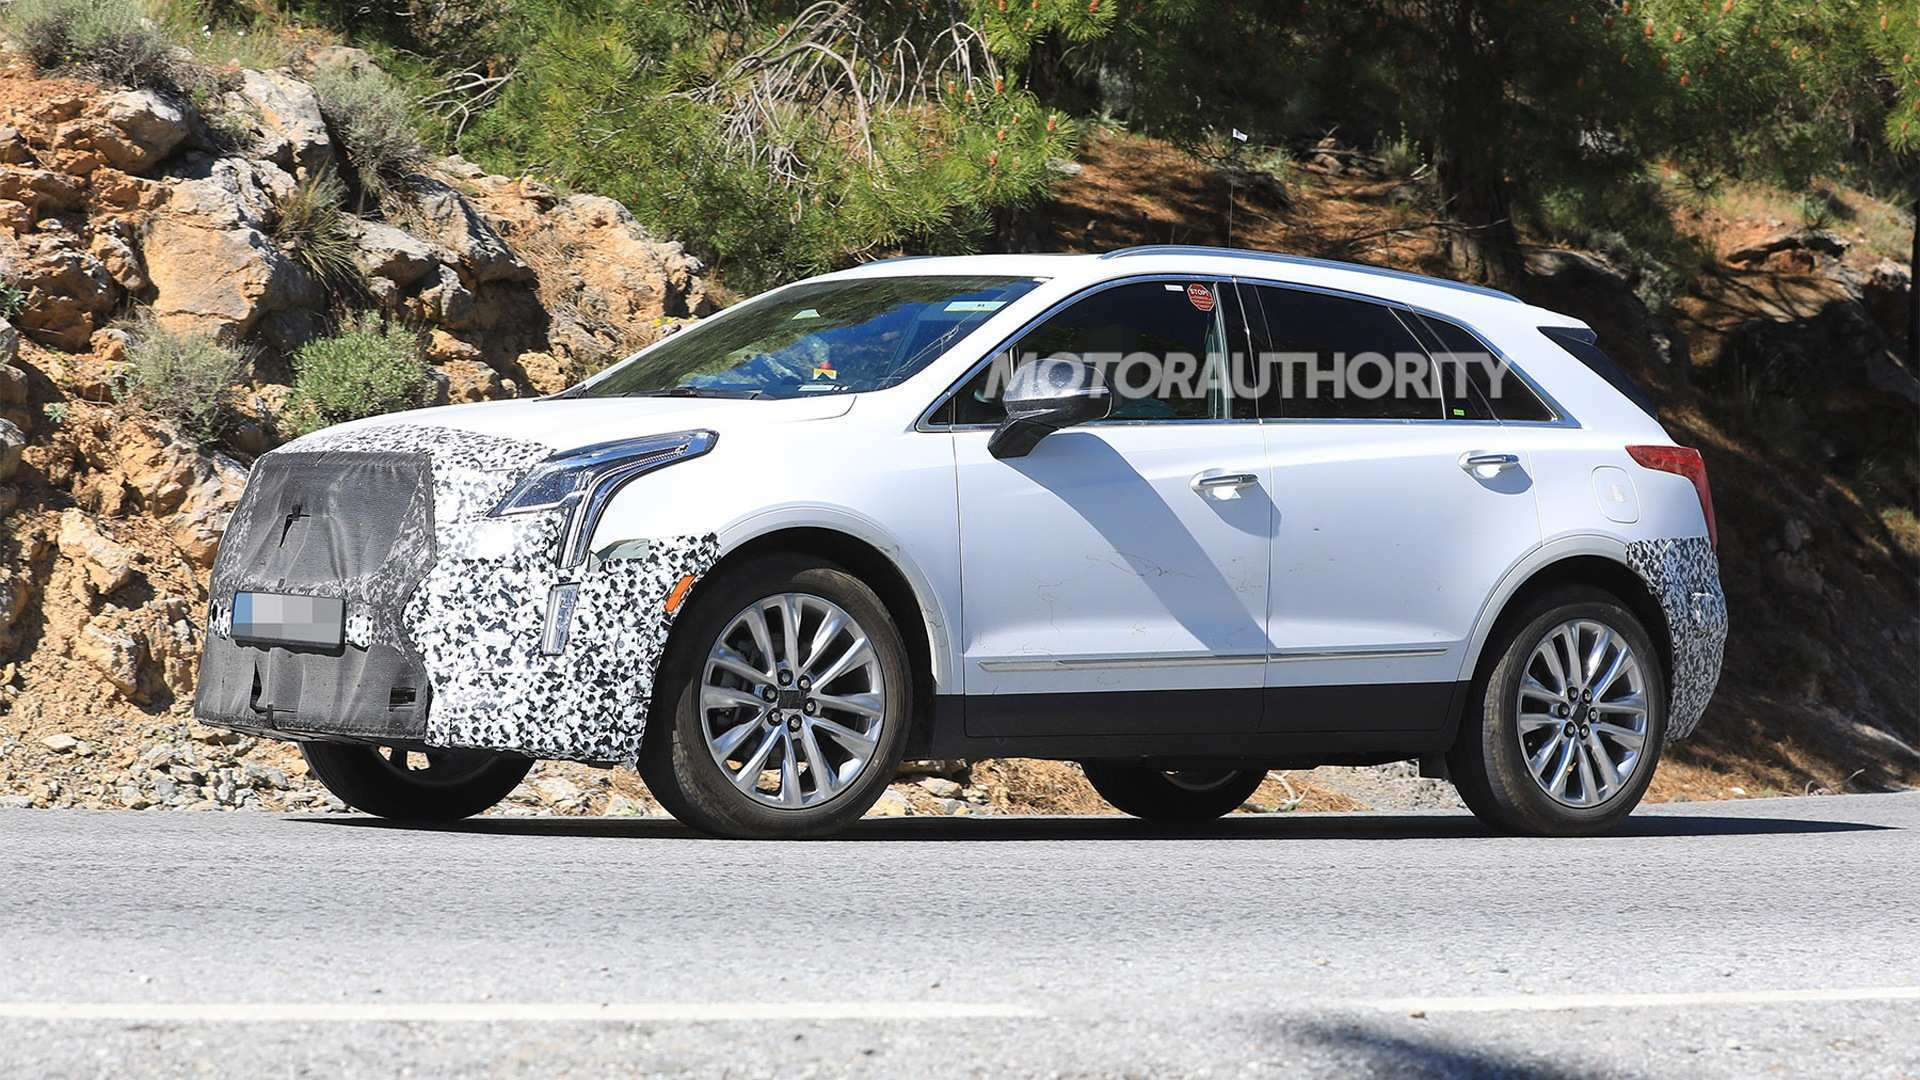 37 Great Spy Shots 2020 Cadillac Xt5 Picture with Spy Shots 2020 Cadillac Xt5